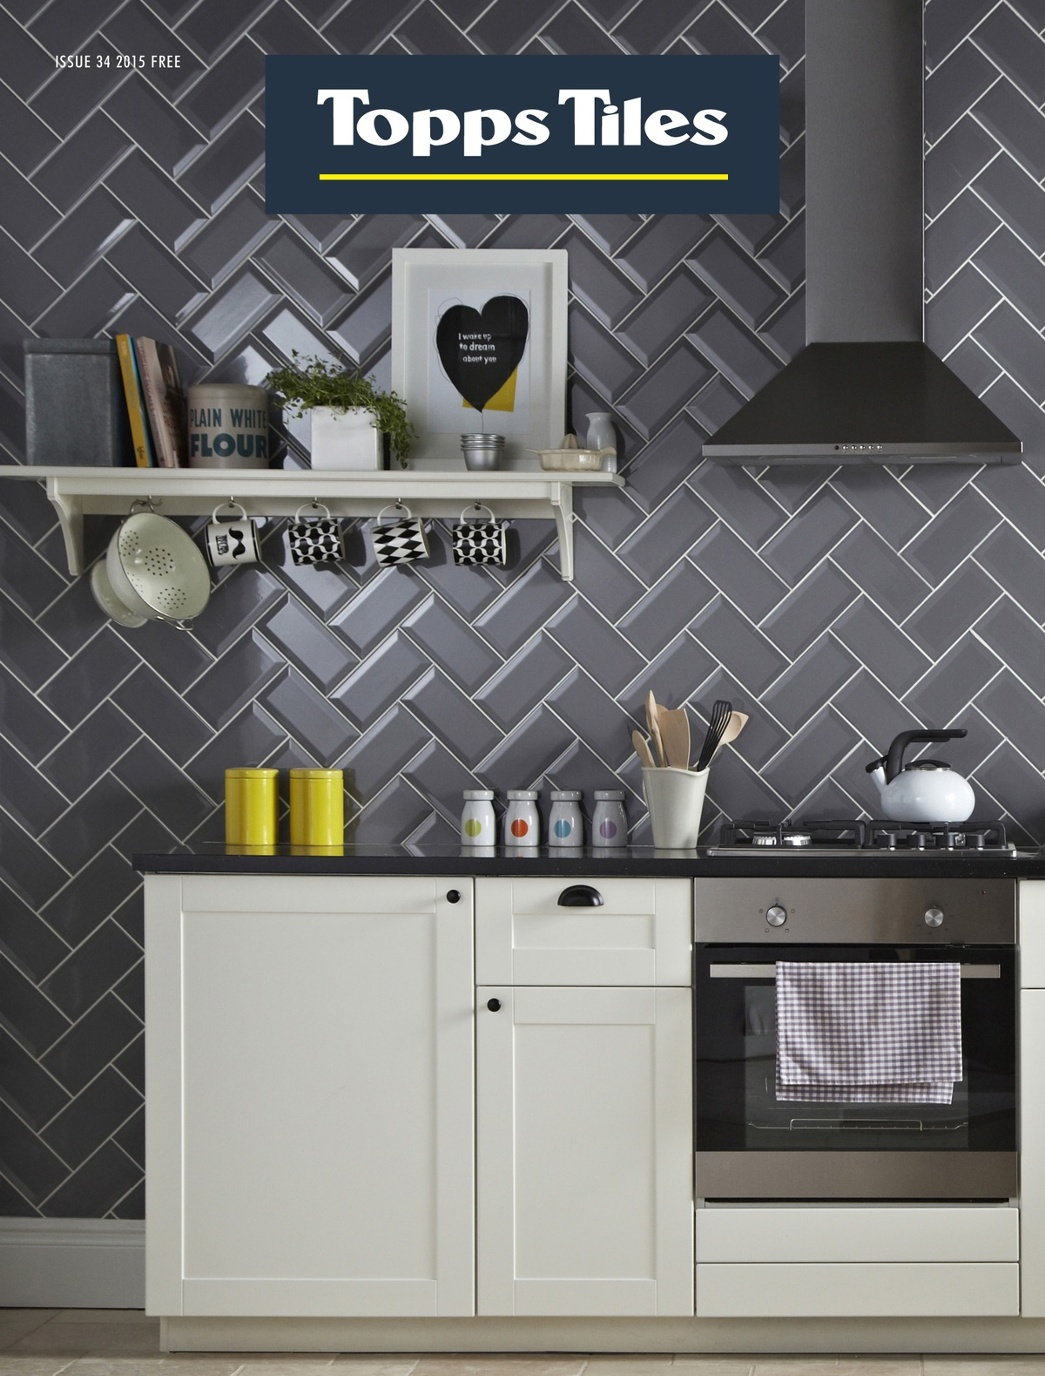 Tile Backsplash Decorative Ideas Page 1